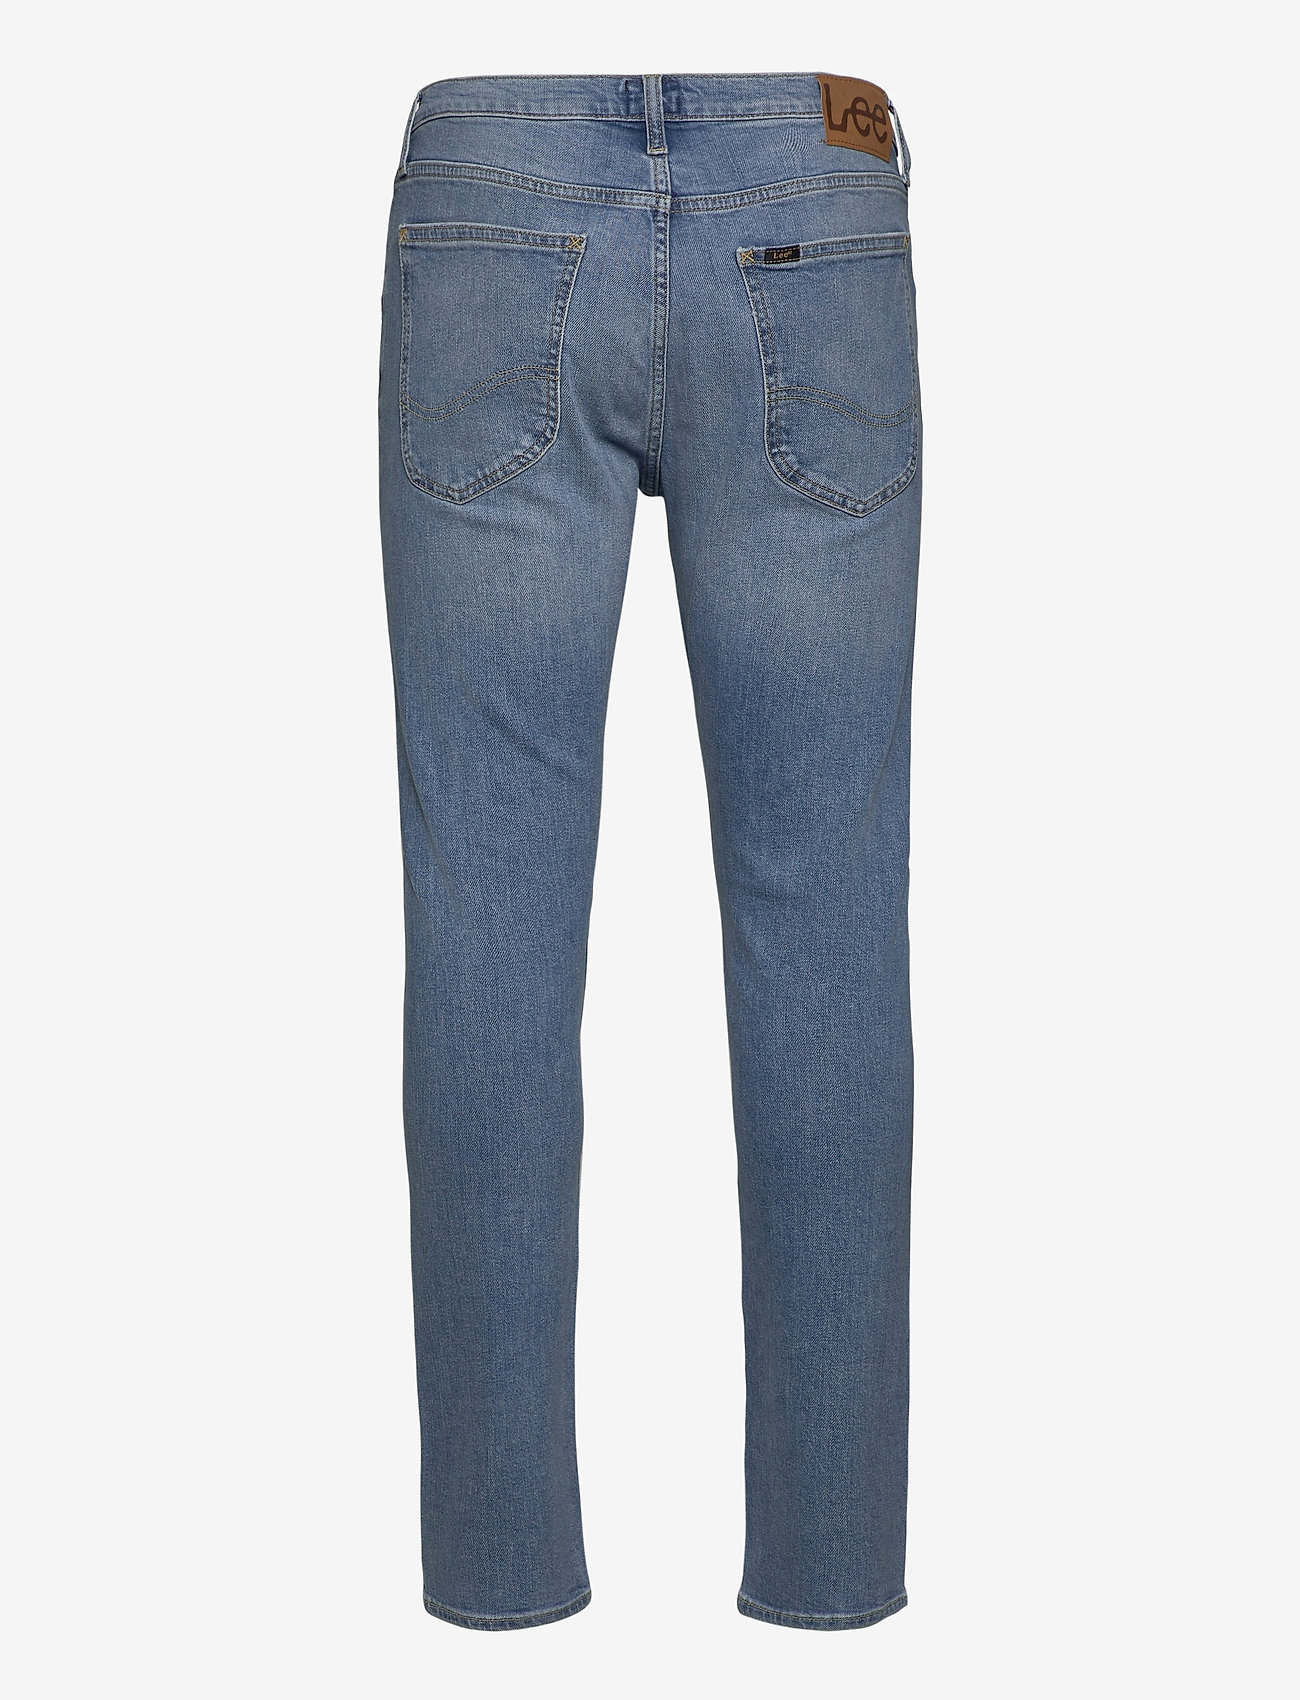 Lee Jeans LUKE - Jeans LIIGHT FREEPORT - Menn Klær